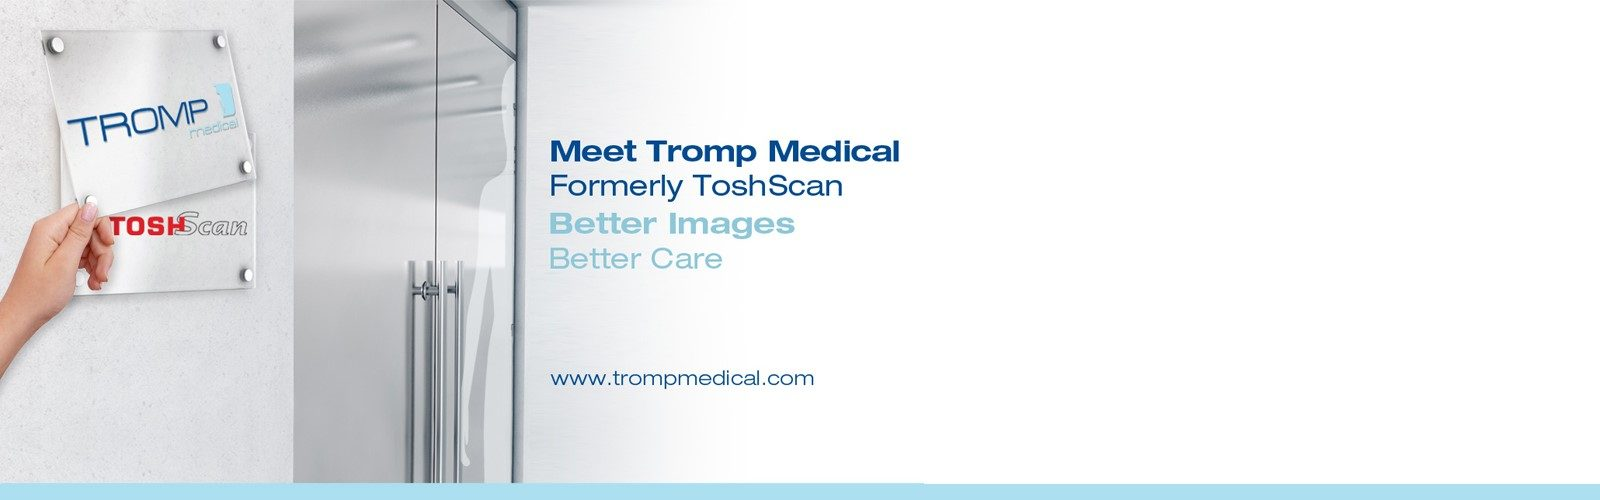 Toshscan header website namechange